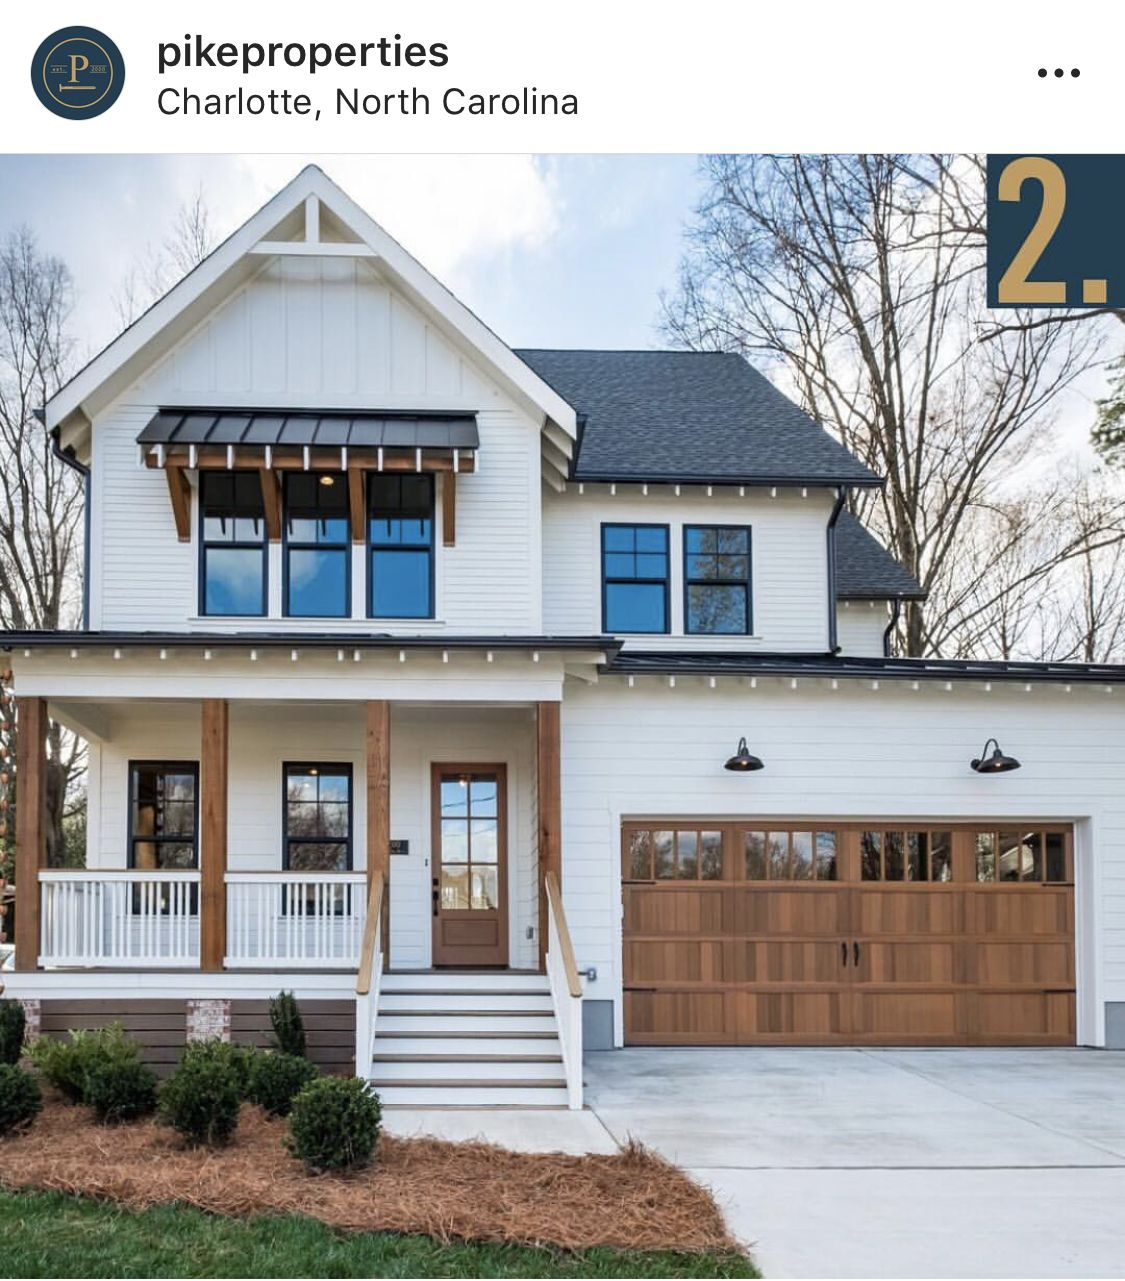 Pin By P Williams On Home Decor In 2018 Pinterest Exterior Home